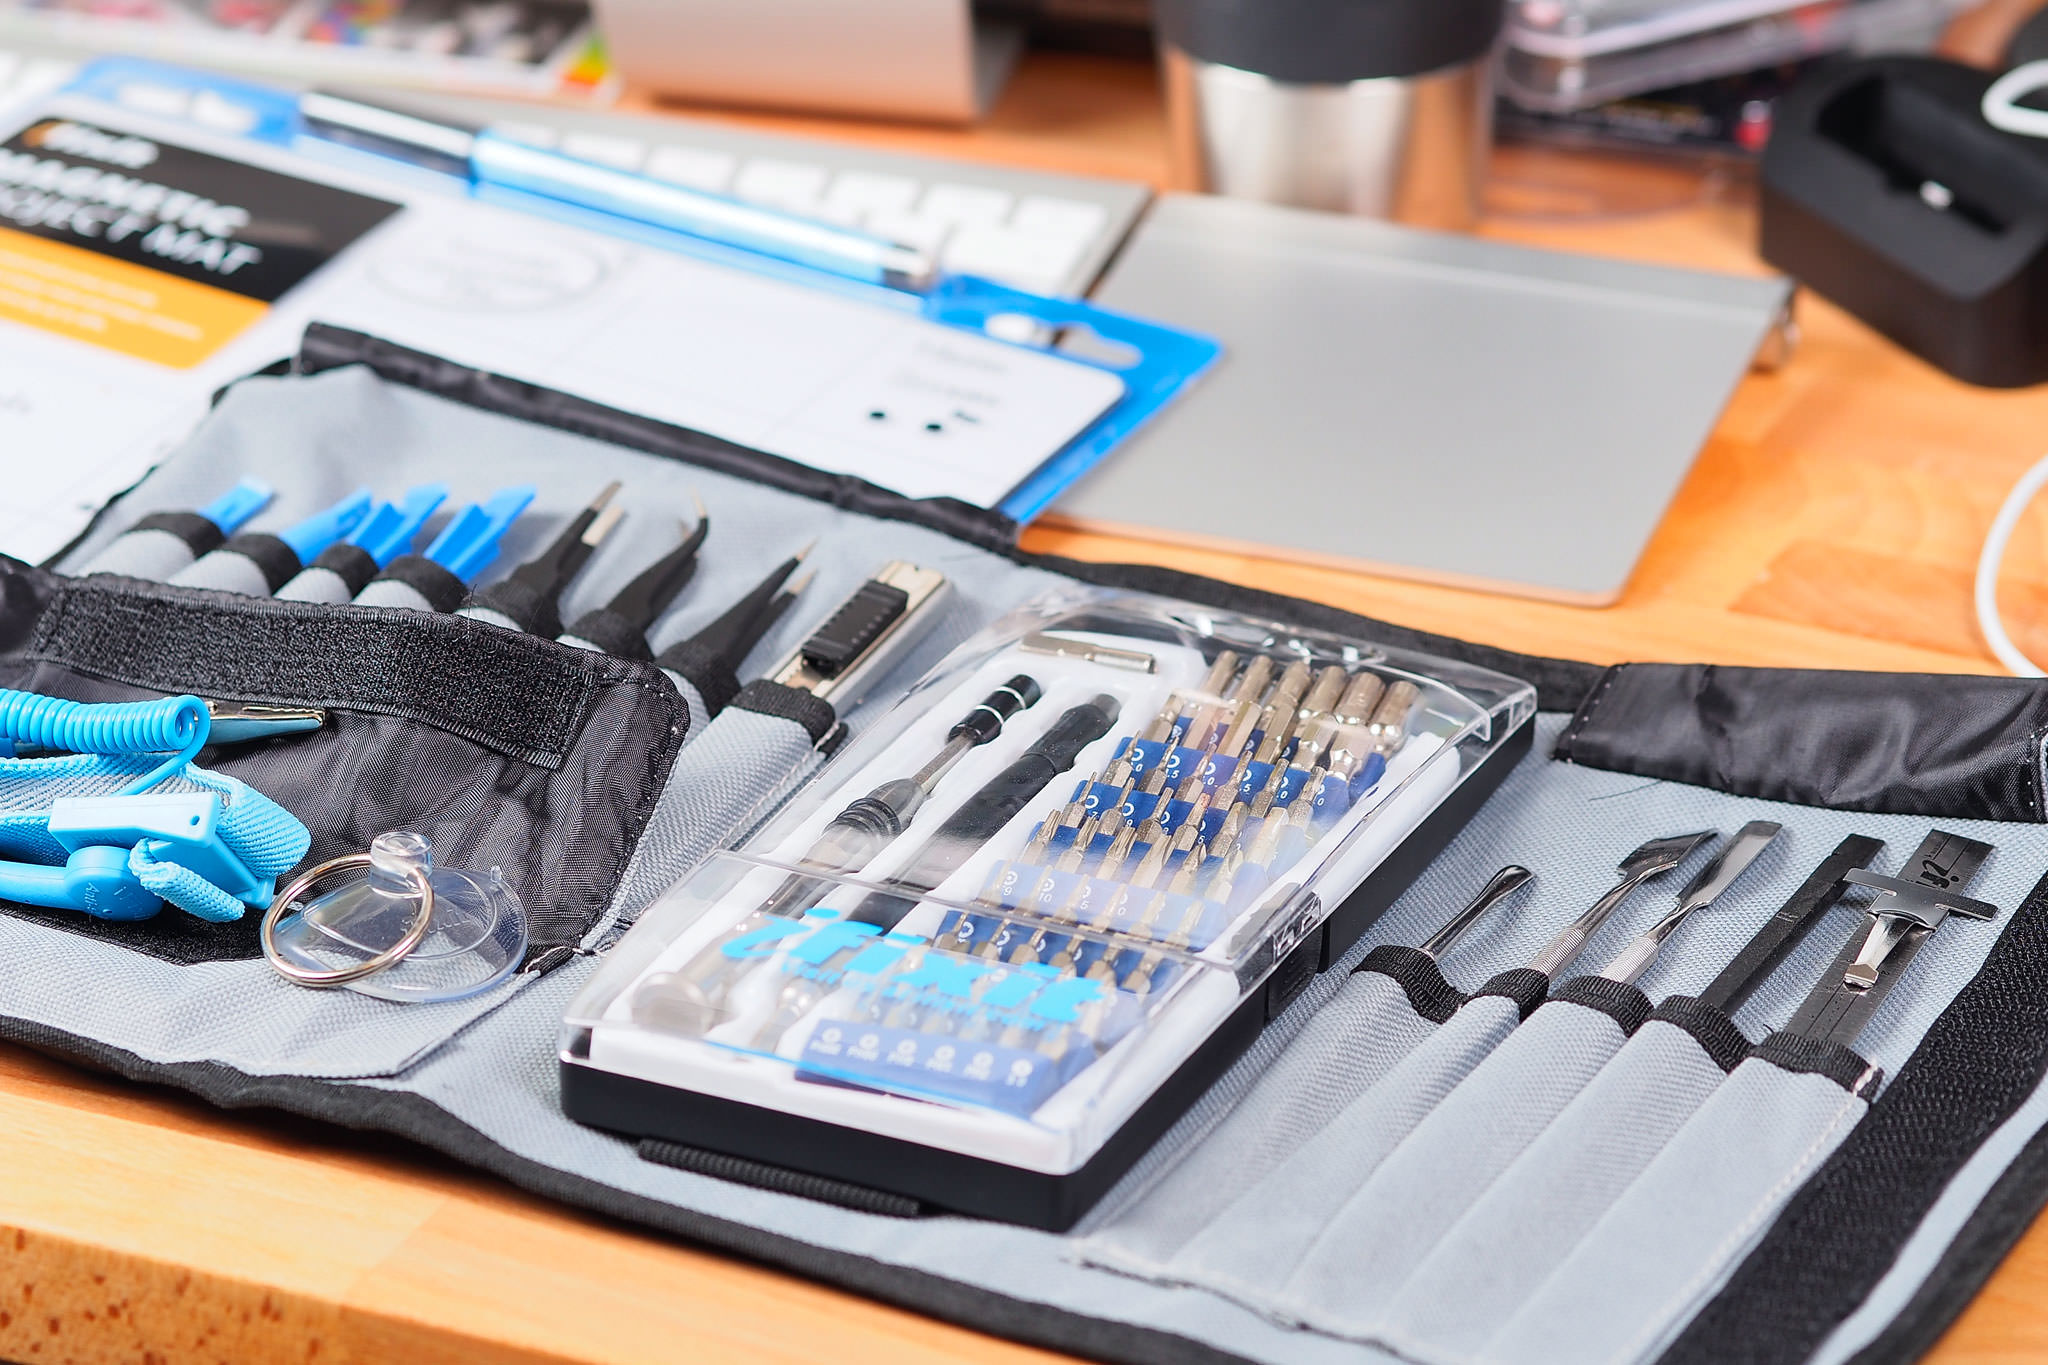 ifixit pro tech toolkit und magnetic project mat gdgts. Black Bedroom Furniture Sets. Home Design Ideas